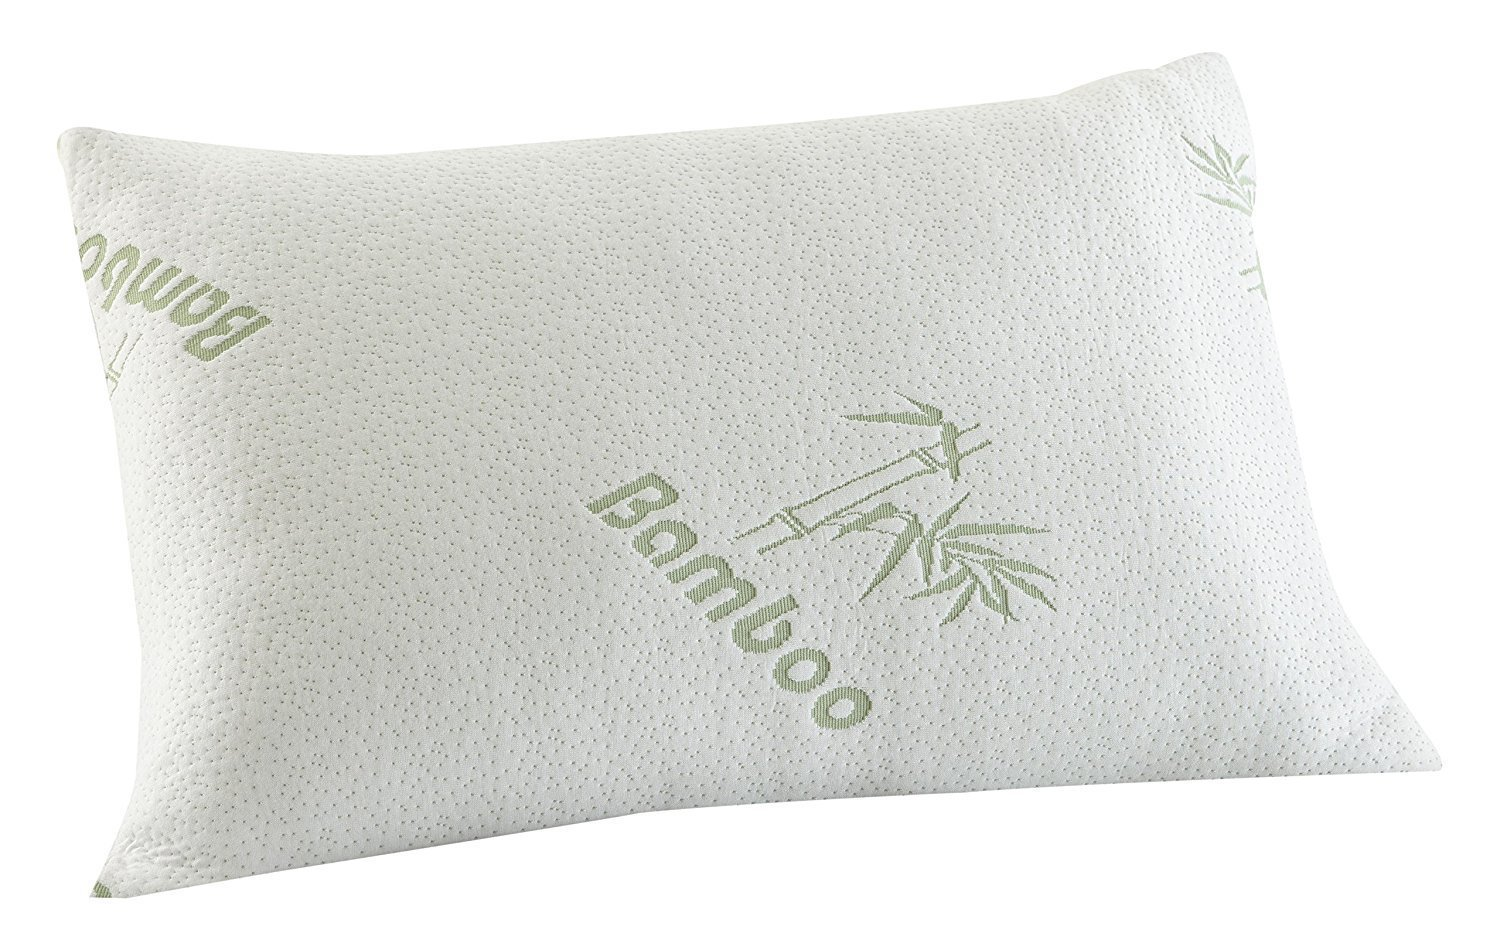 Luxury Bamboo Memory Foam Pillow, Temprature Sensitive Cover, Anti-Bacterial Support Pillow Choice of Packs (Pack of Four) Nights uk Ltd